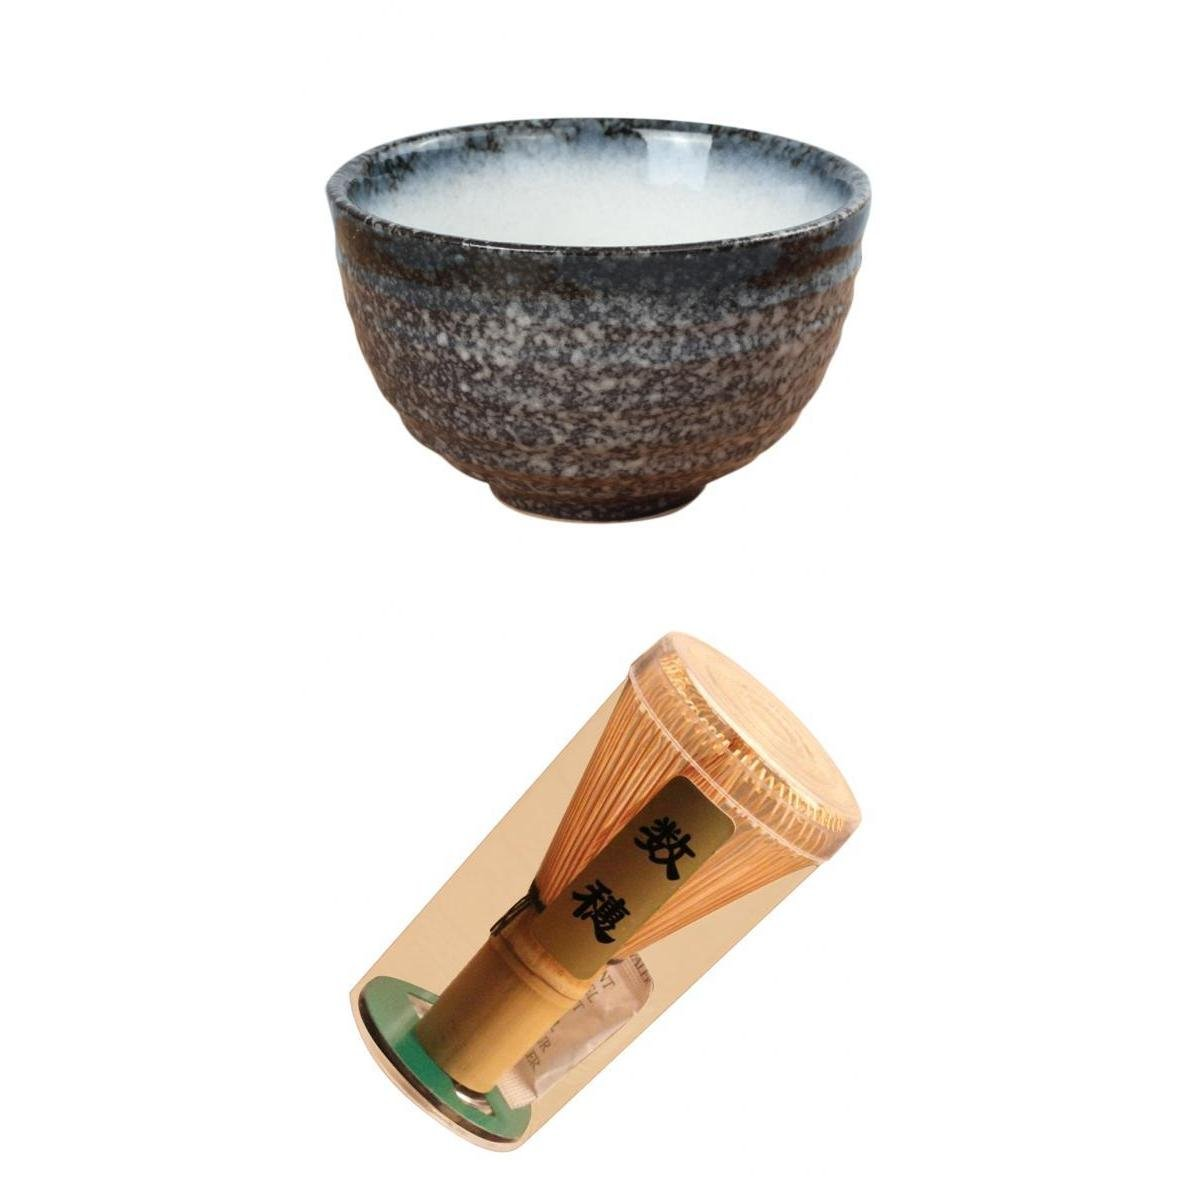 MagiDeal Tea Ceremony Bowl Green Tea Ceramic +Bamboo Chasen Matcha Powder Whisk Set